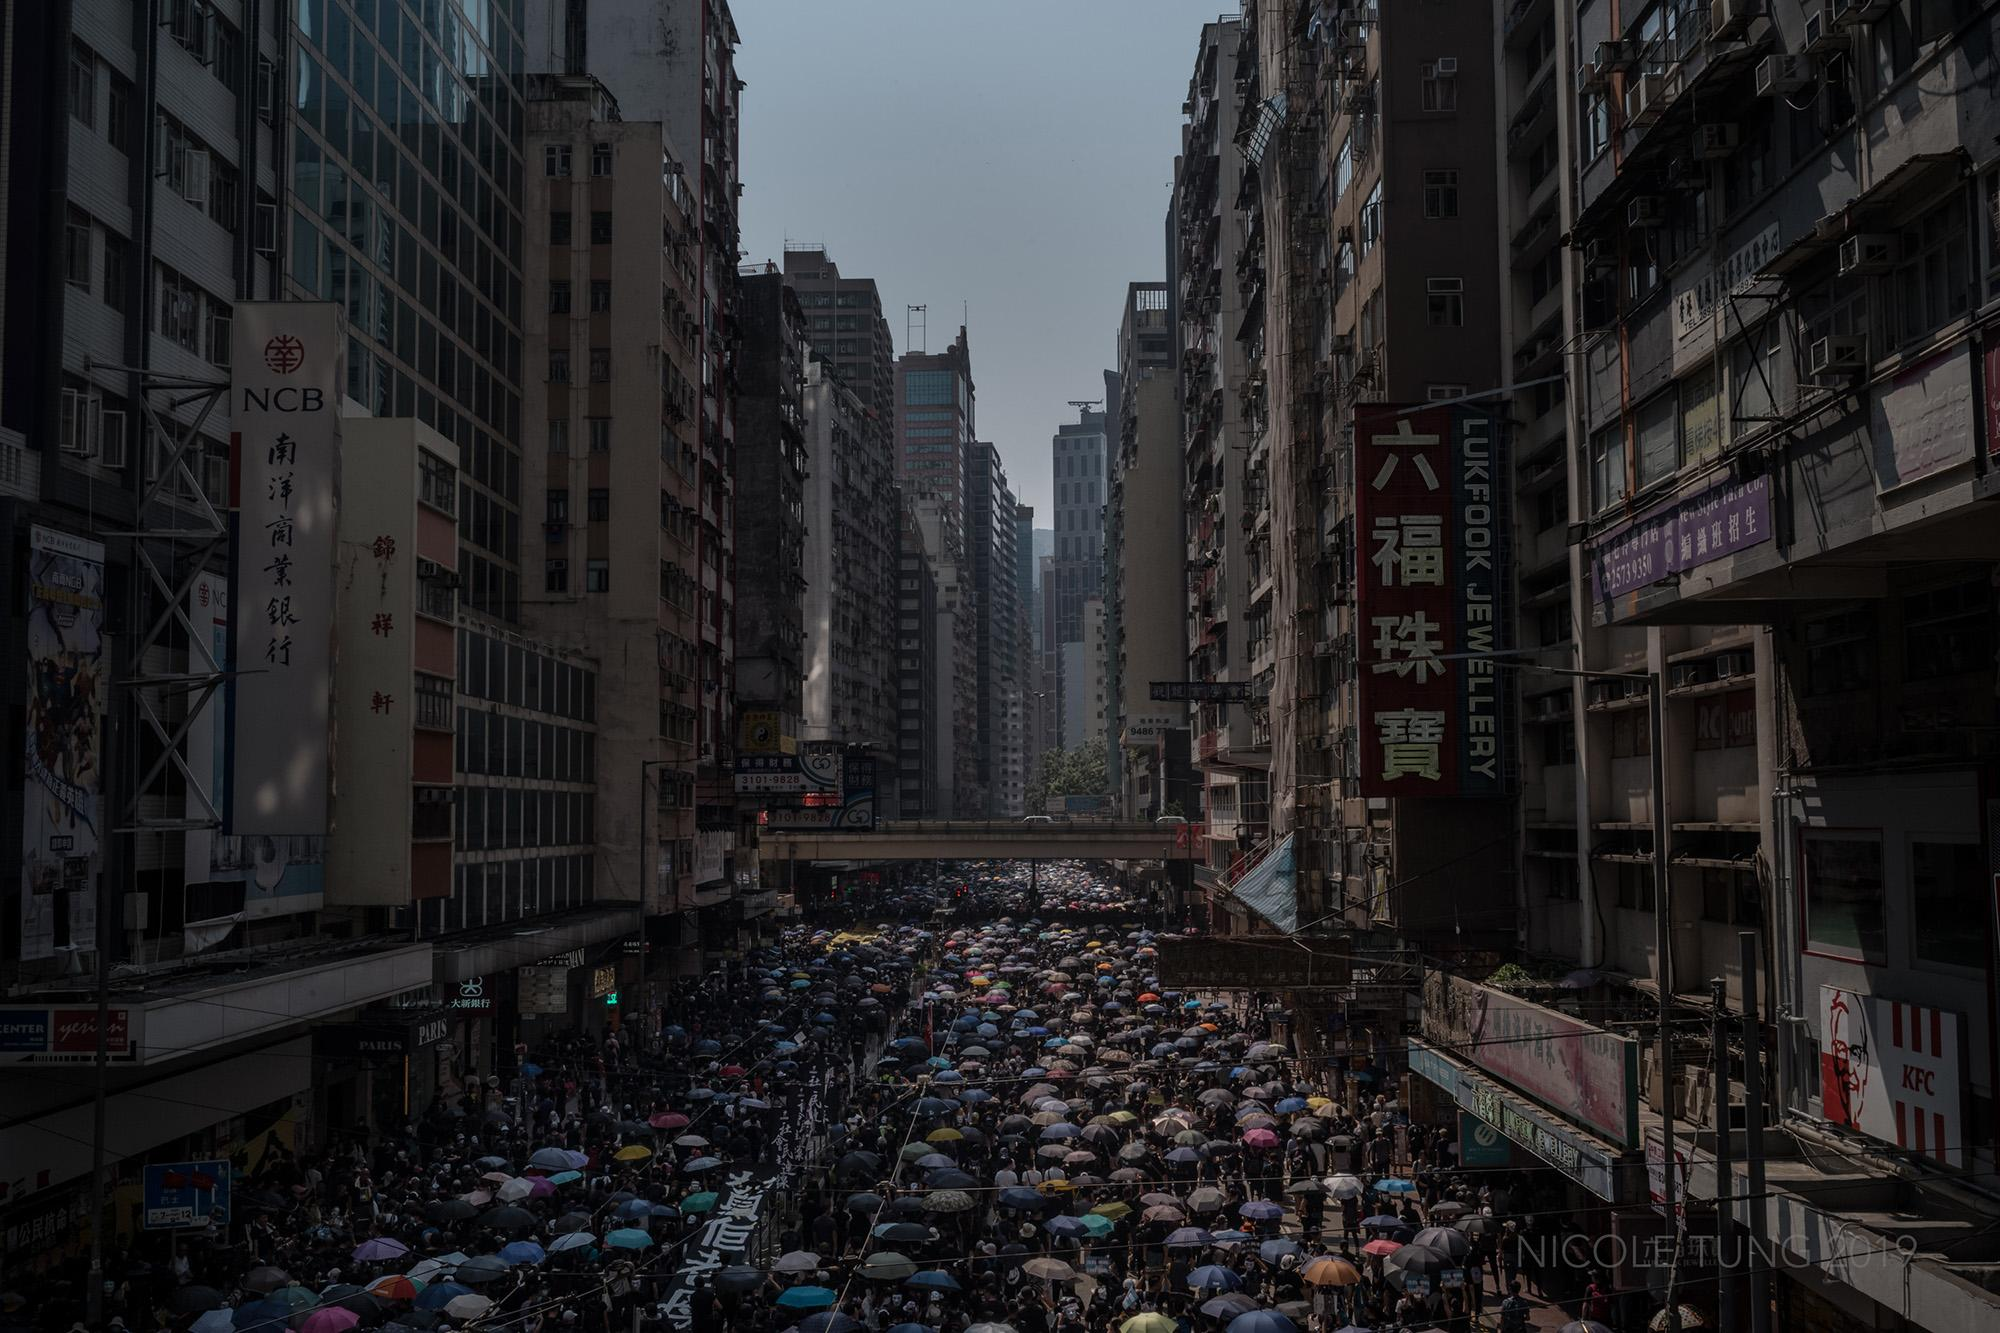 Thousands of protestors partake in an anti-government rally on Chinese National Day, in Hong Kong, S.A.R. Both peaceful and increasingly violent demonstrations have rocked the city since June 2019. October 1, 2019.